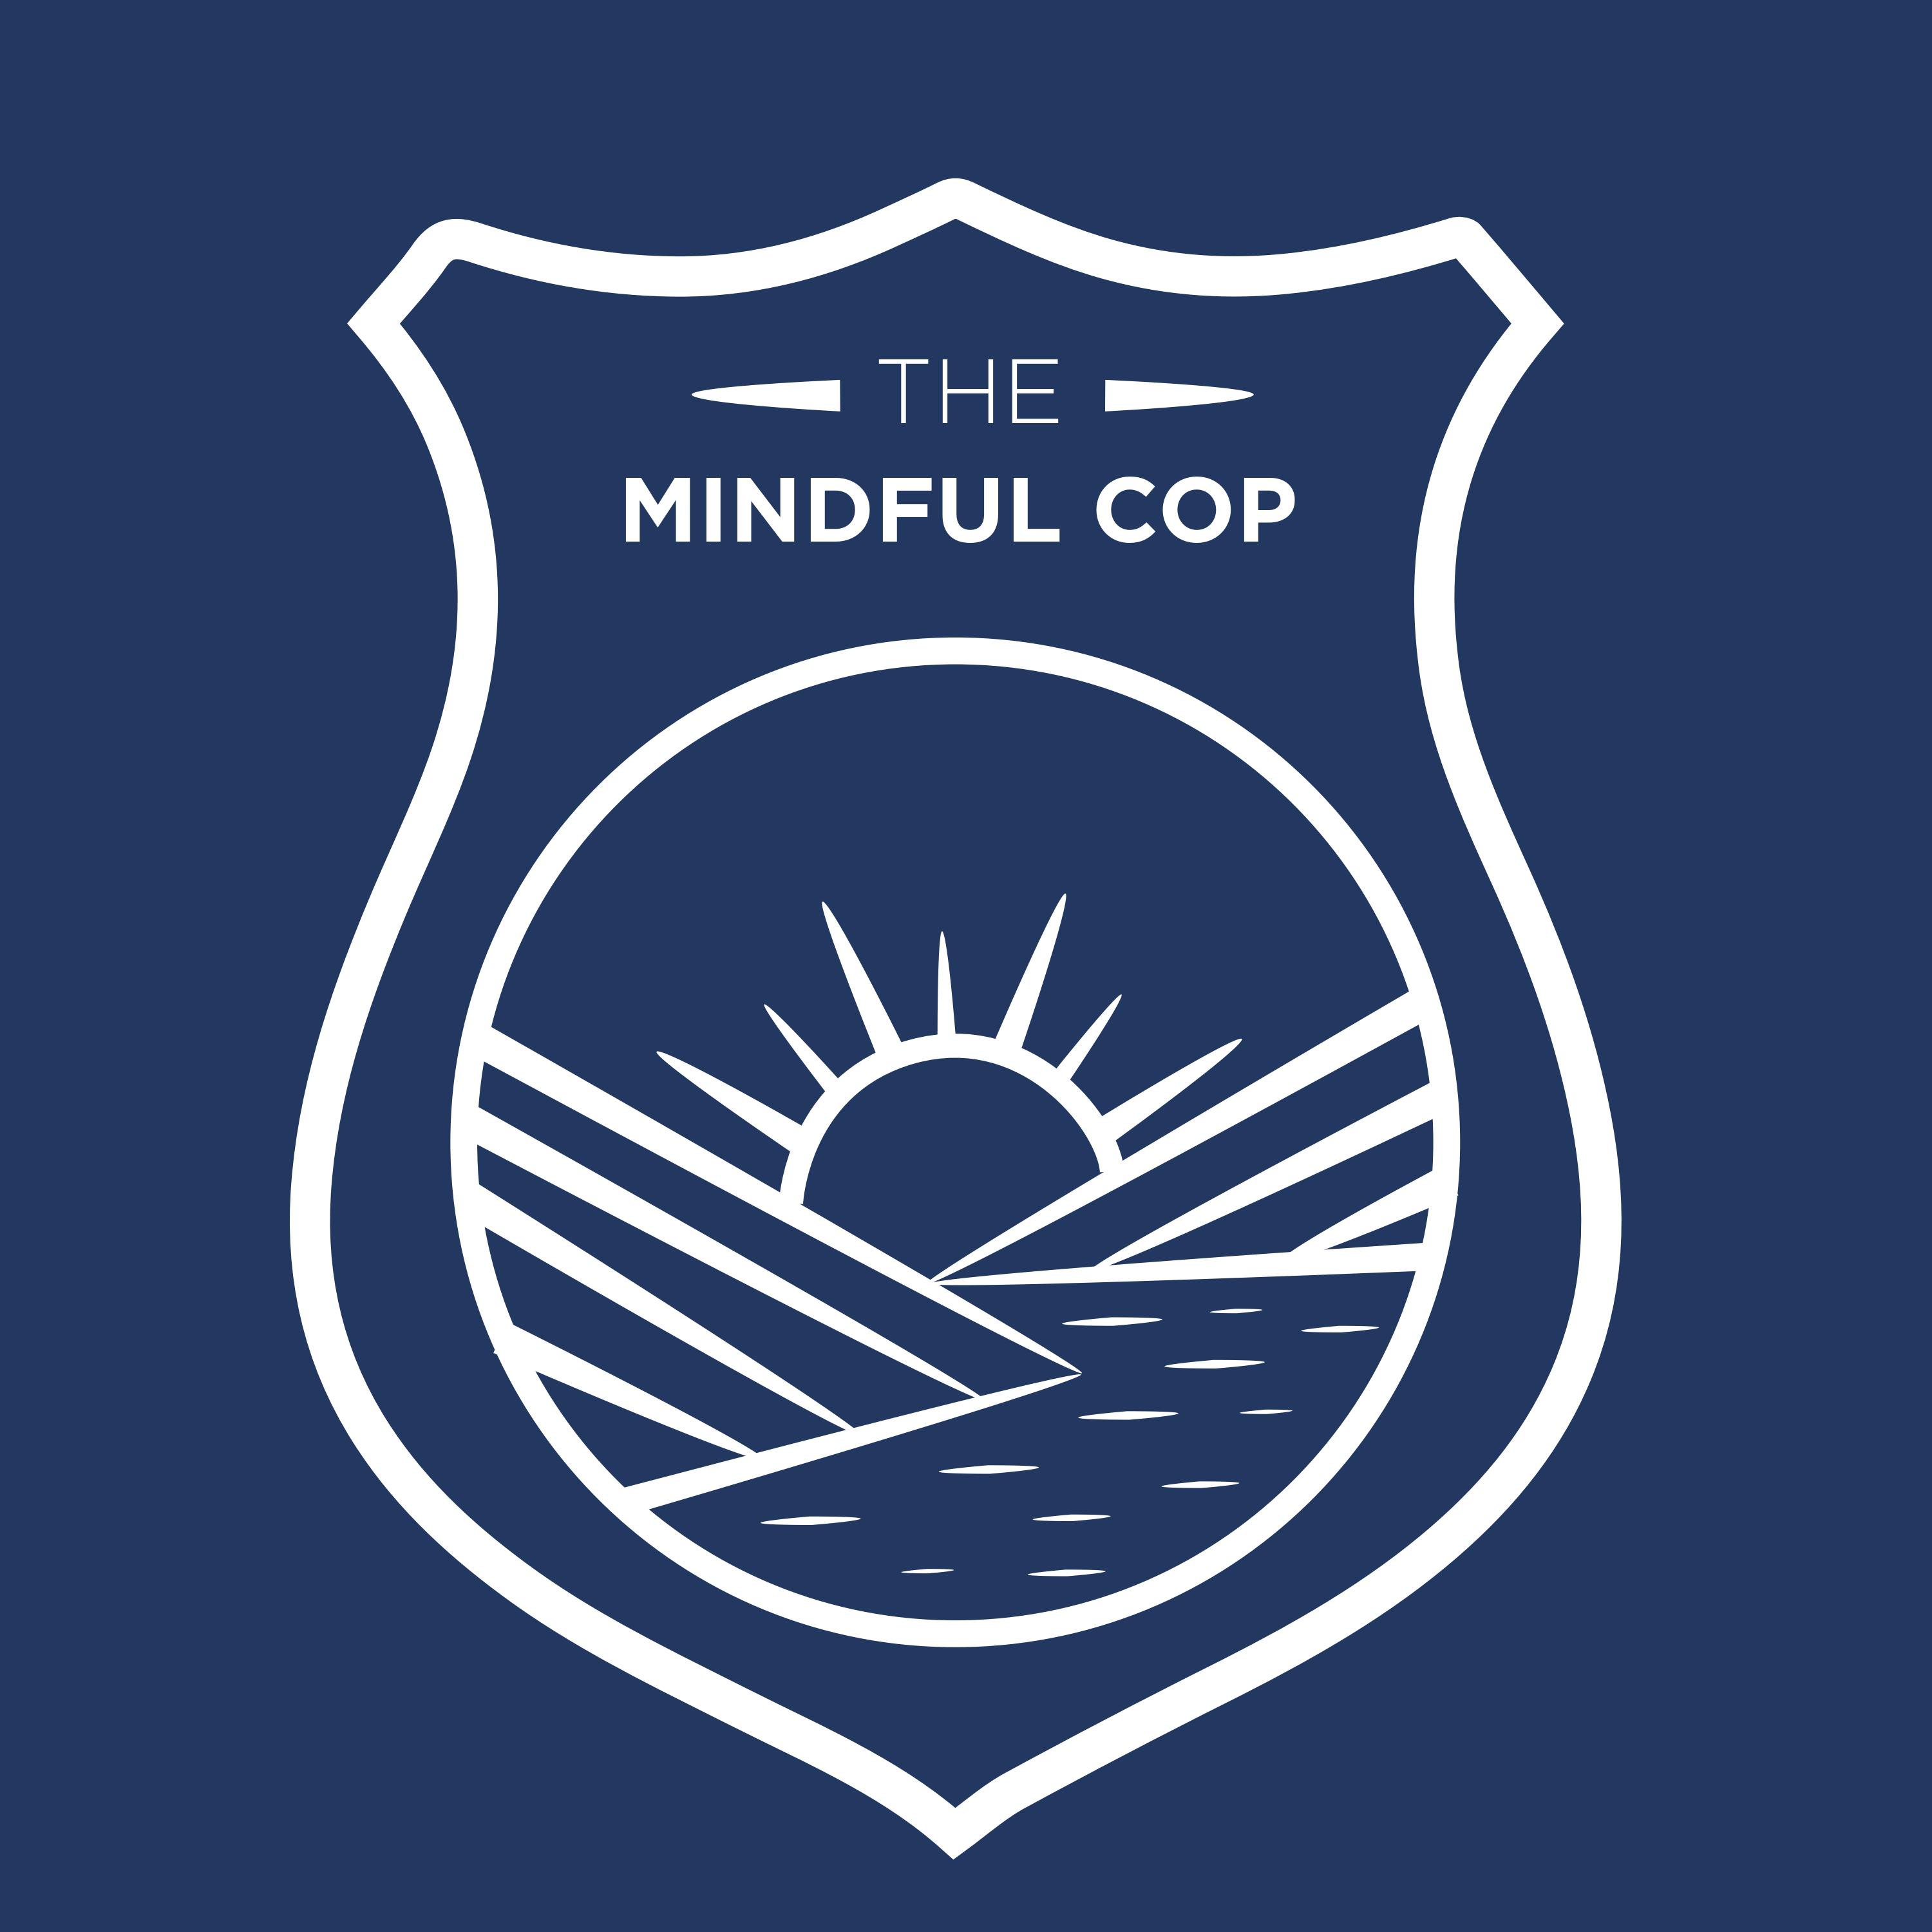 The Mindful Cop